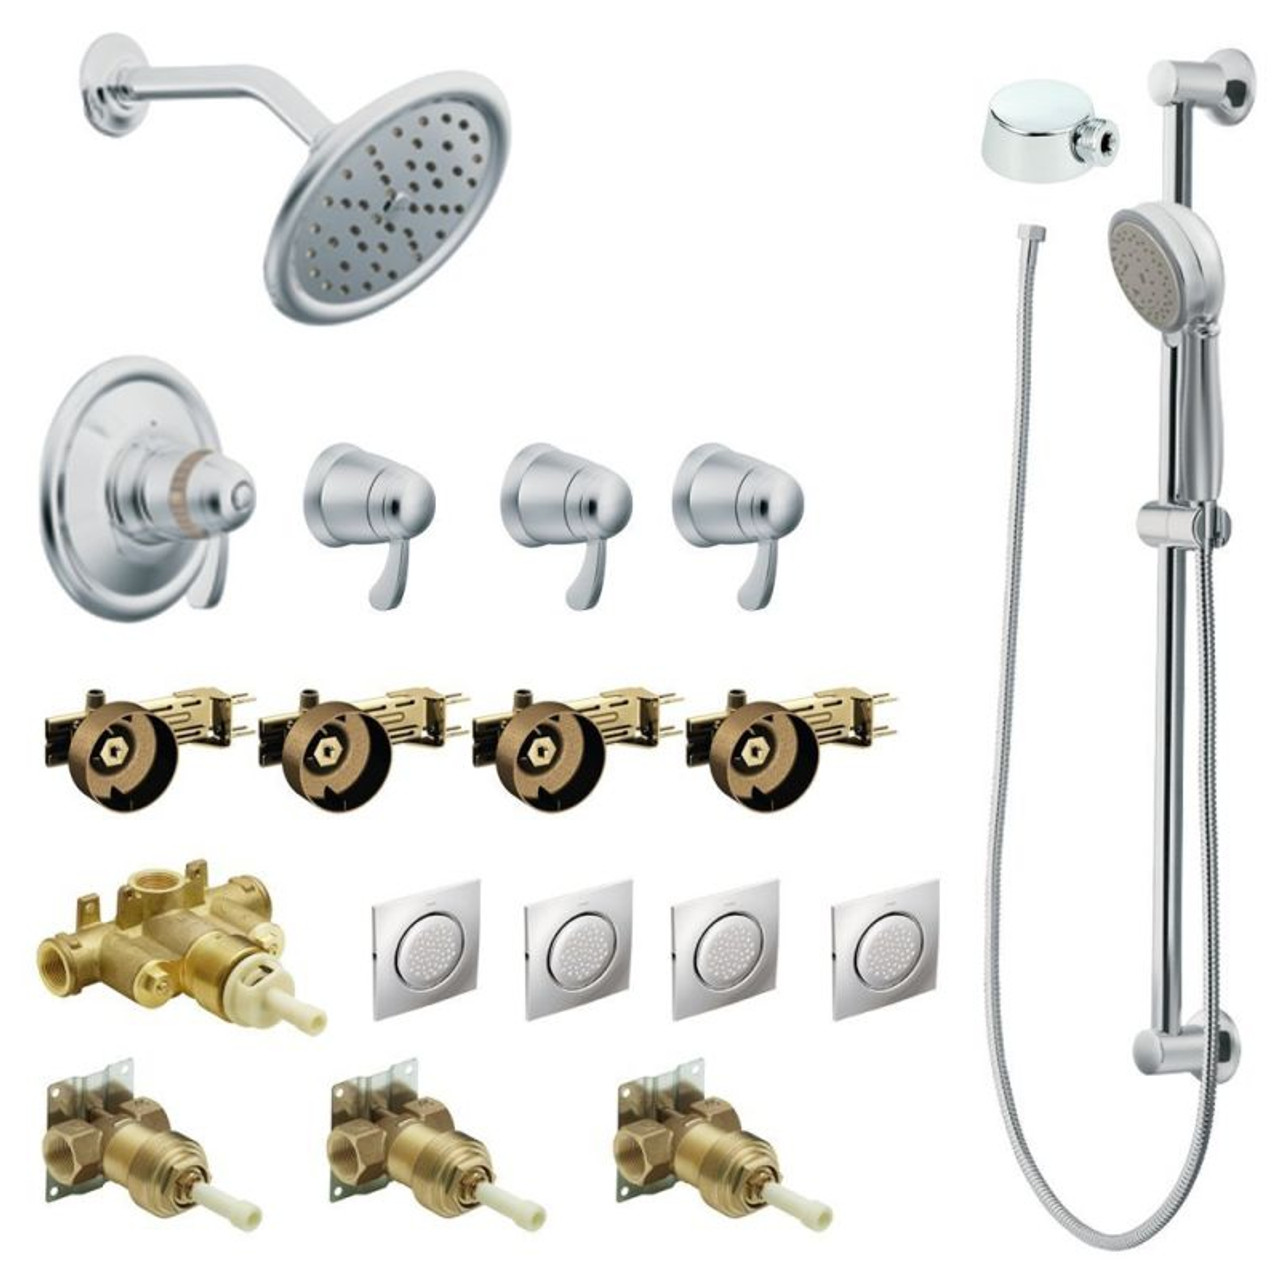 Moen Kspex Hb Ts277cr Exacttempa 7 In Rainshower Vertical Spa Kit With Handheld Shower And Slide Bar